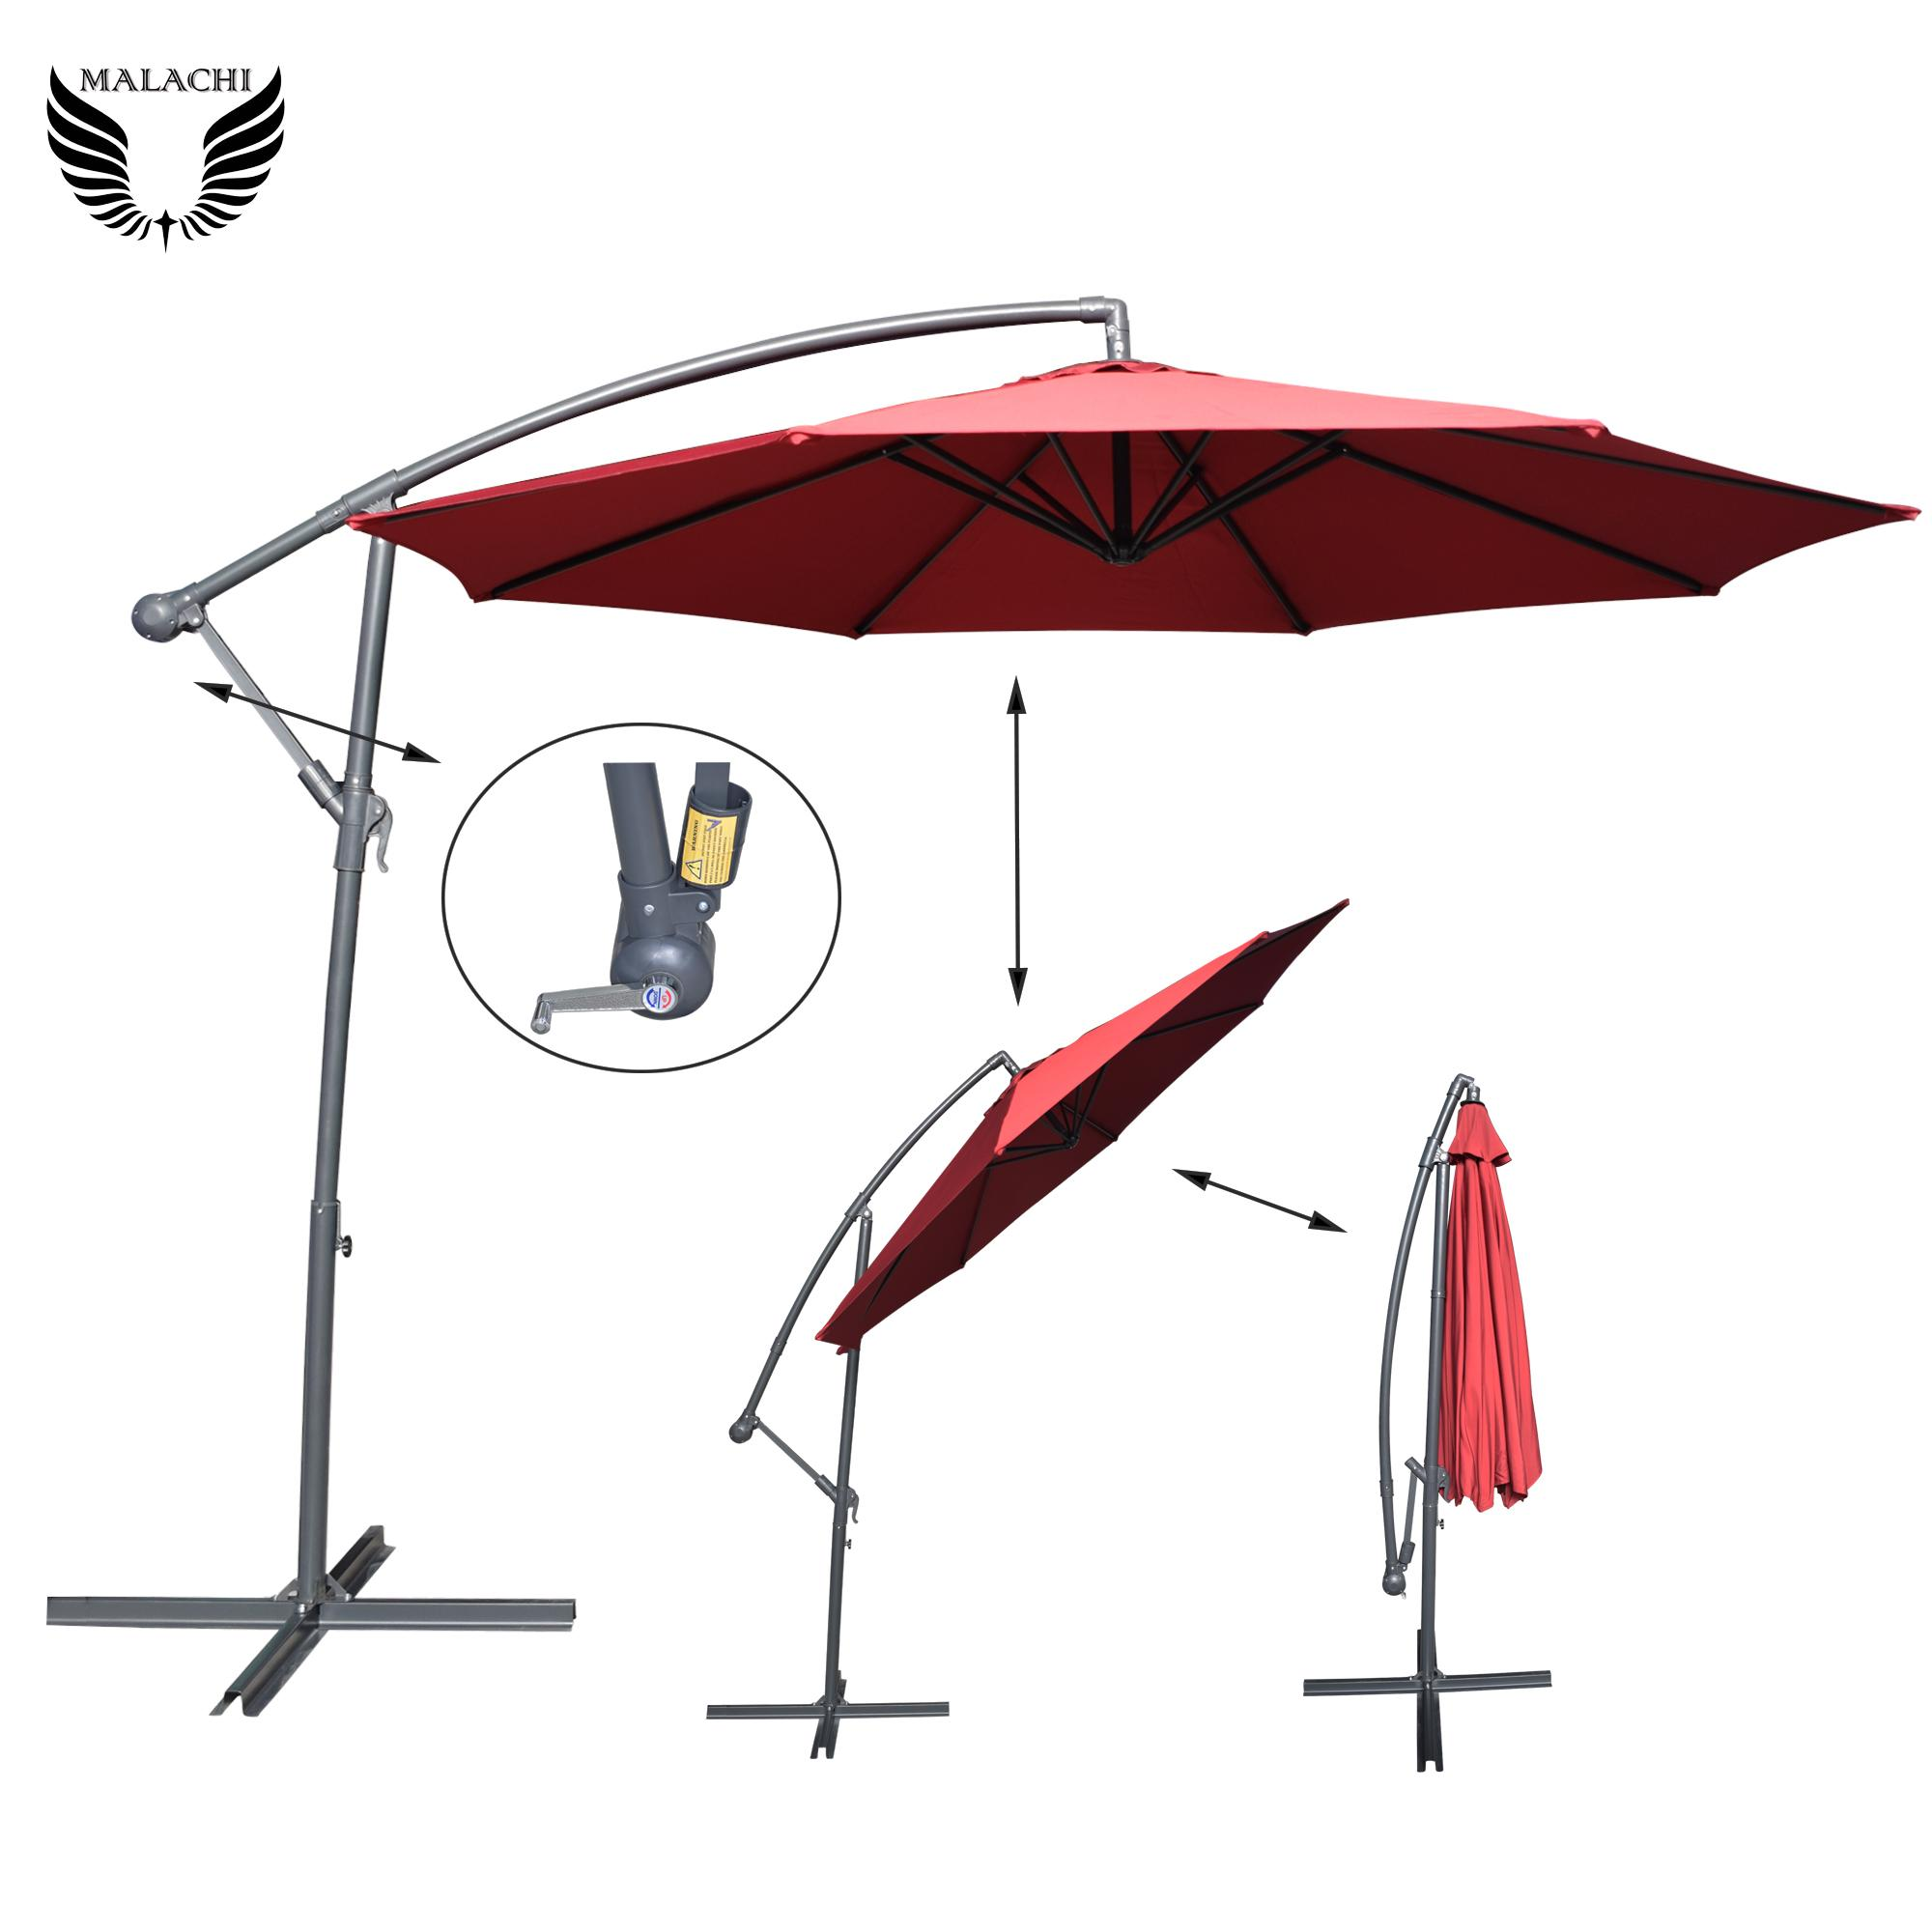 Malachi 290cm Outdoor Garden Parasol Canopy Cover Yard Patio Umbrella